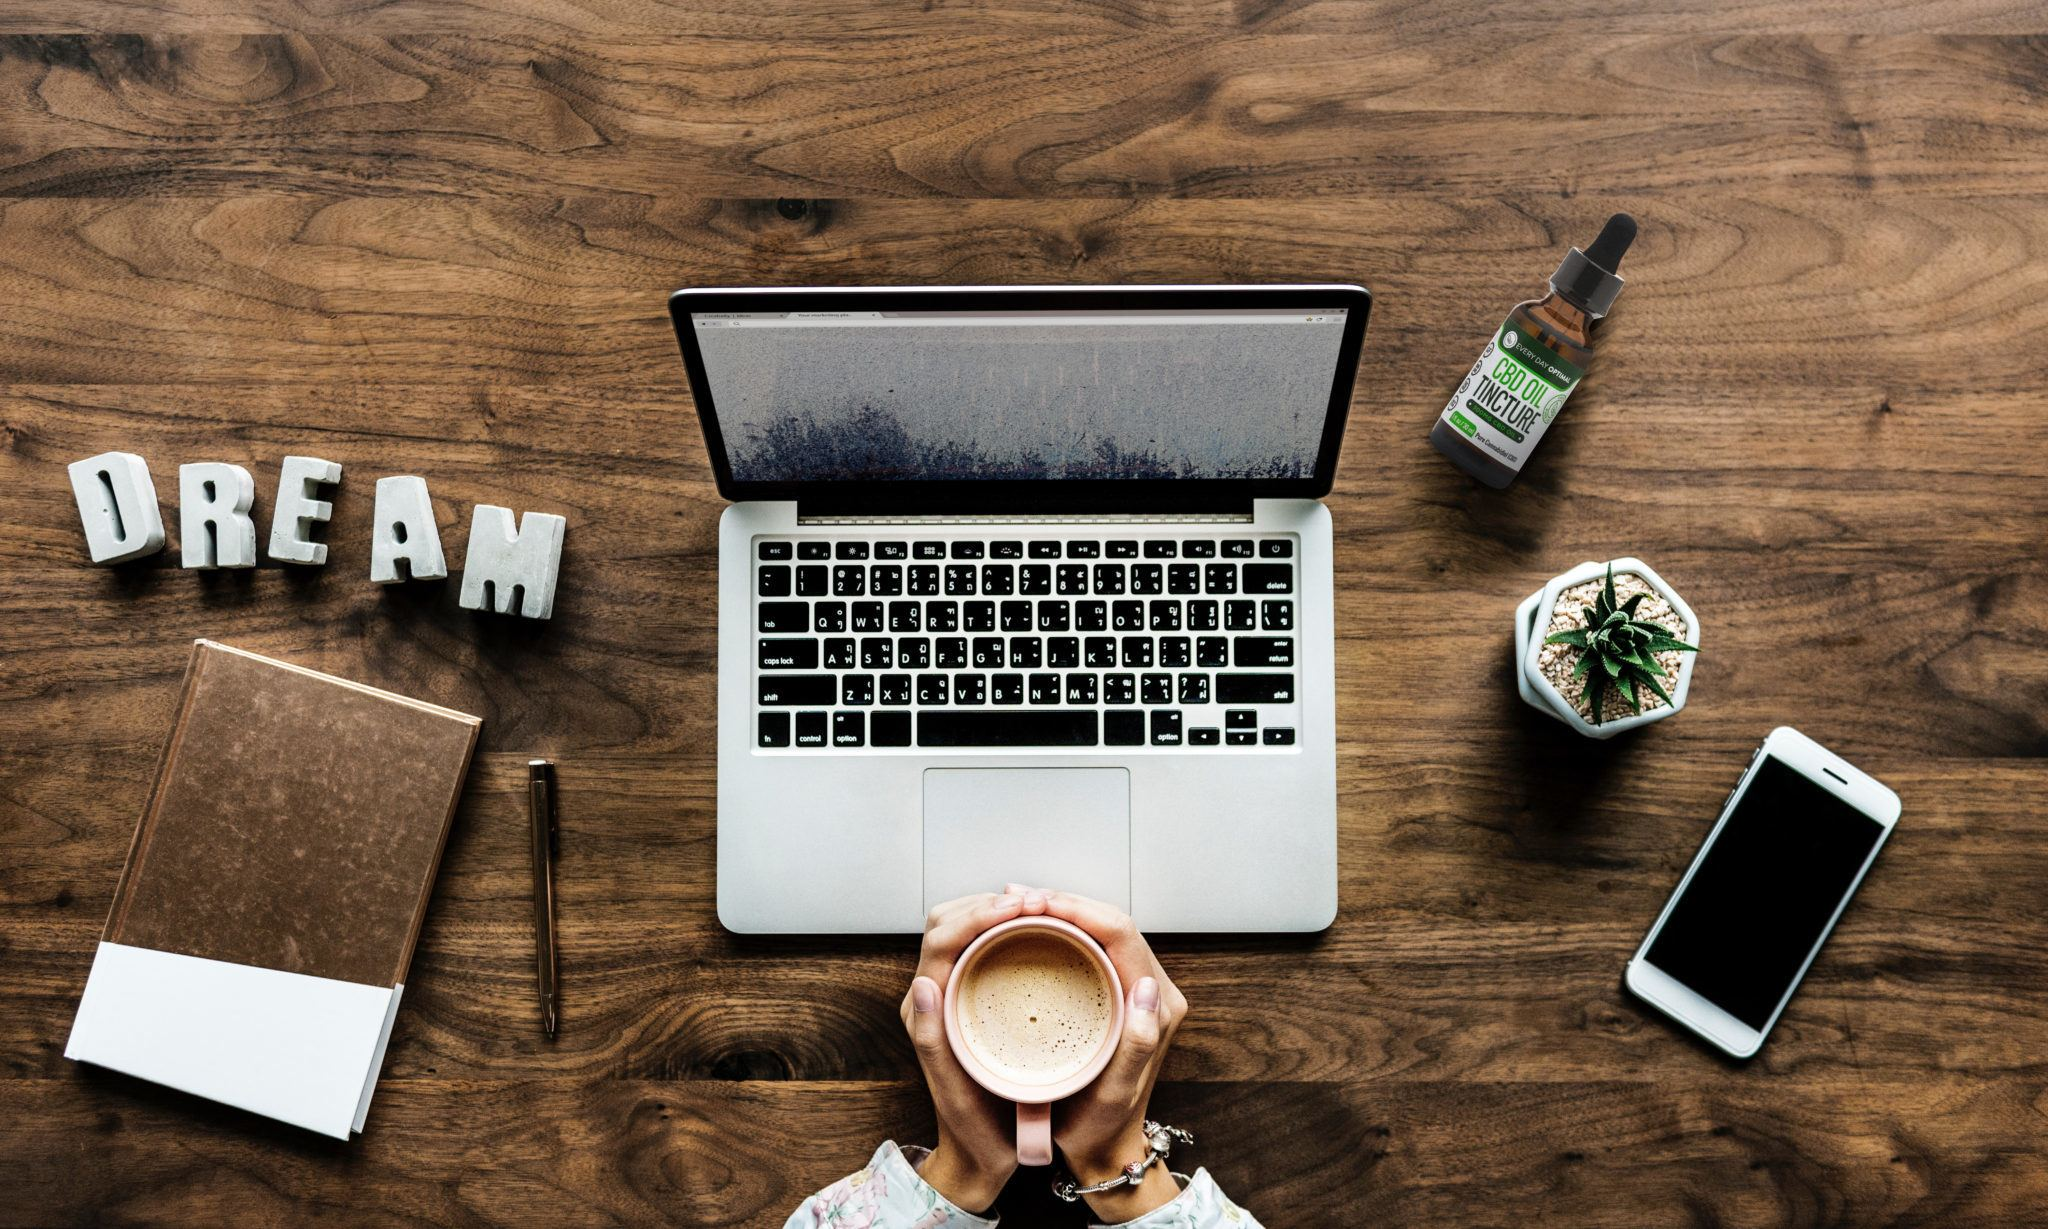 In this article, we compare the benefits of CBD vs CBN and explain how both can help us live better lives. A seated person cups a mug of coffee in their hands in front of a laptop. Arranged nearby are a small plant, a notepad, a smartphone, a bottle of Every Day Optimal CBD, and decorate letters spelling the word DREAM.